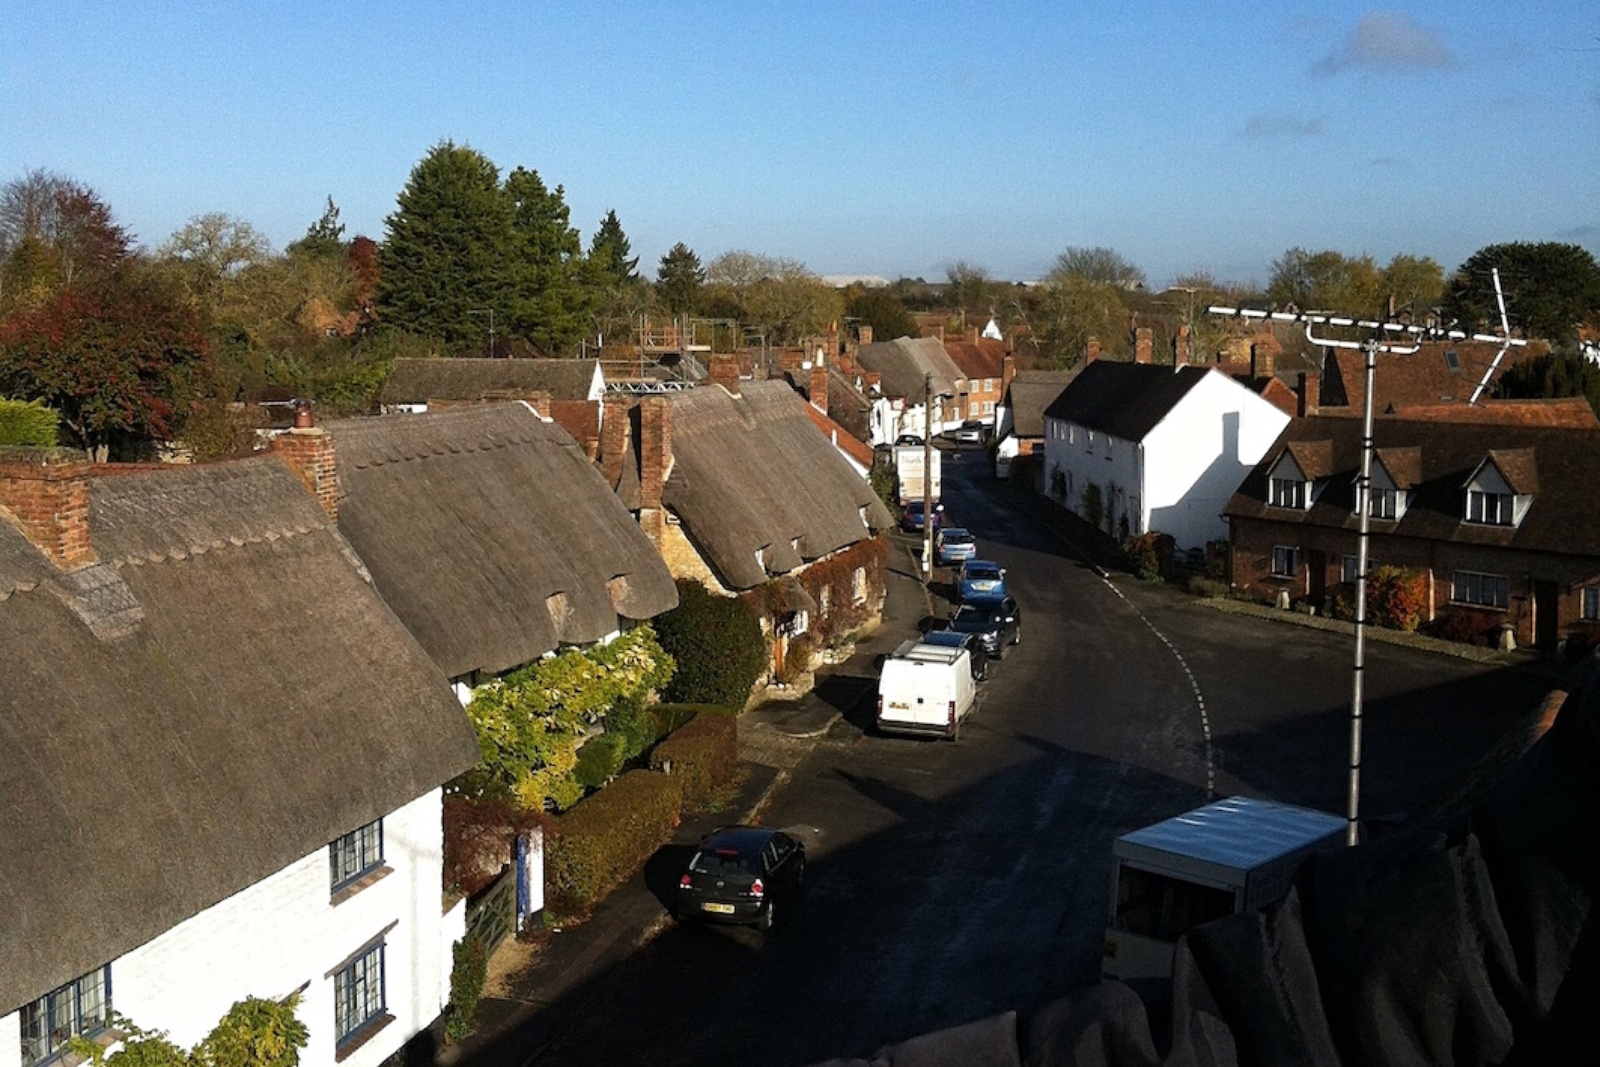 The beautiful thatched rooftops of Long Crendon village.